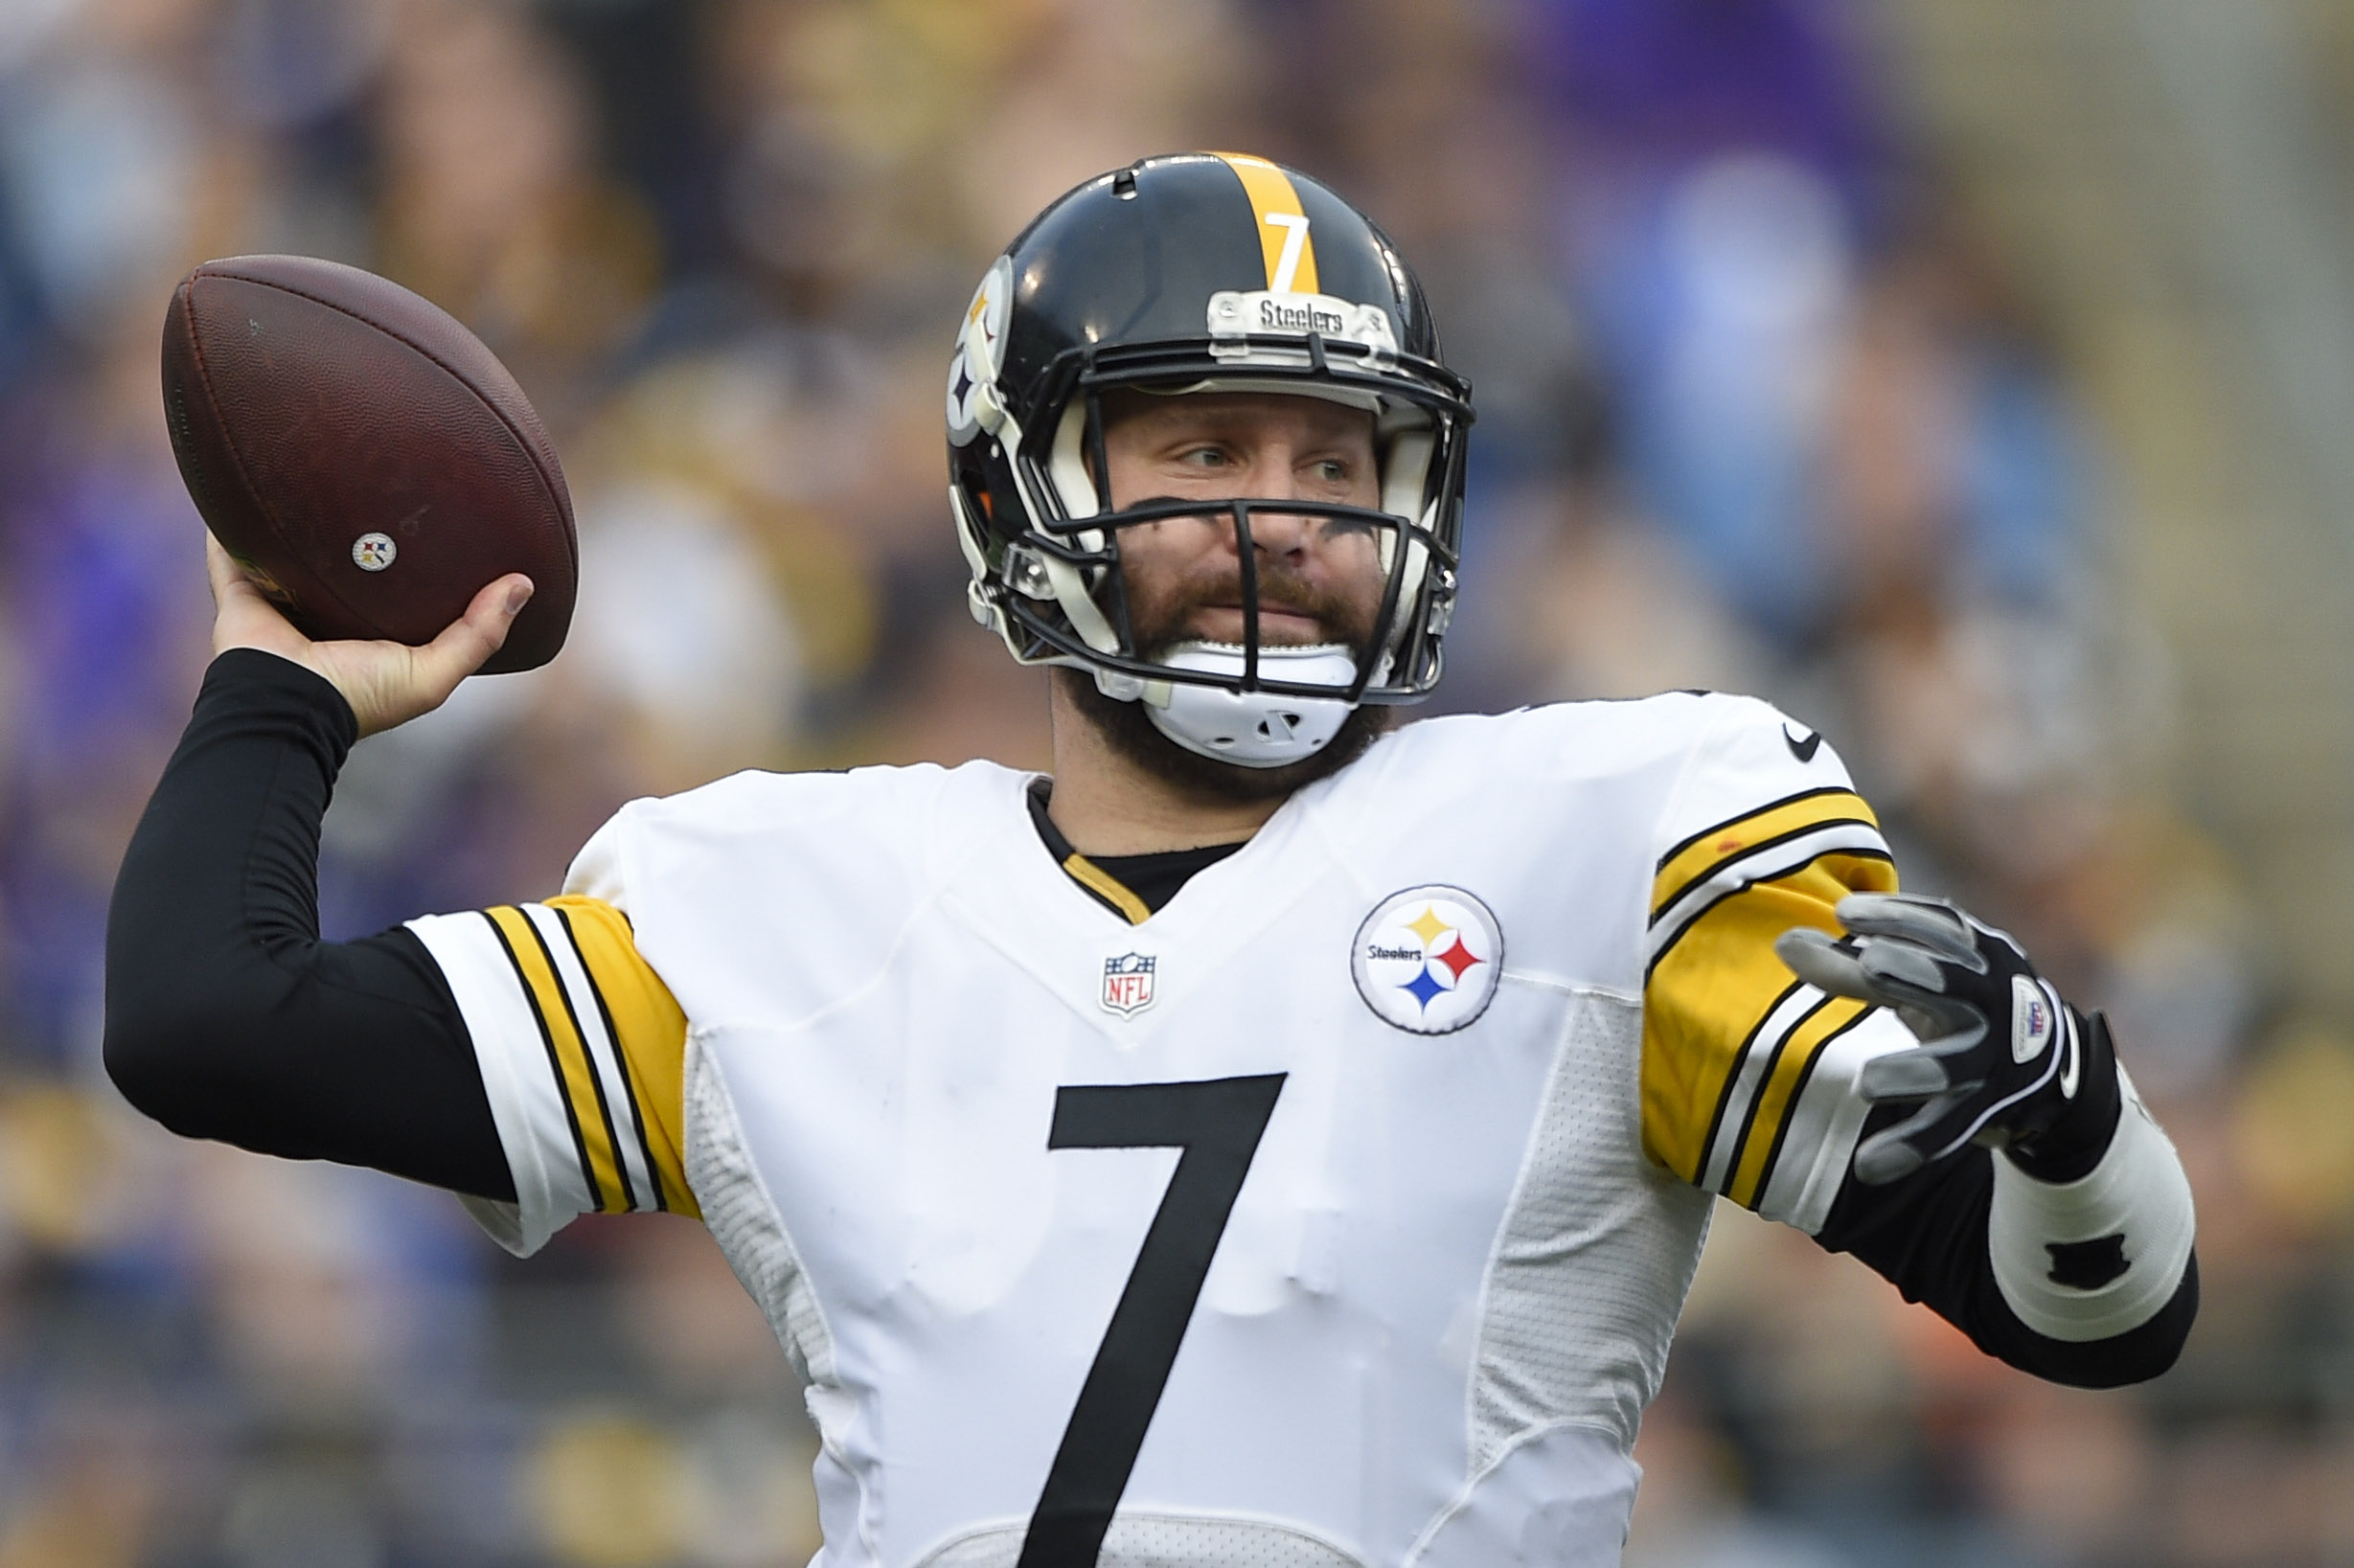 FILE - In this Sunday, Dec. 27, 2015 file photo, Pittsburgh Steelers quarterback Ben Roethlisberger (7) passes the ball during the first half of an NFL football game against the Baltimore Ravens in Baltimore. (AP Photo/Nick Wass, File)